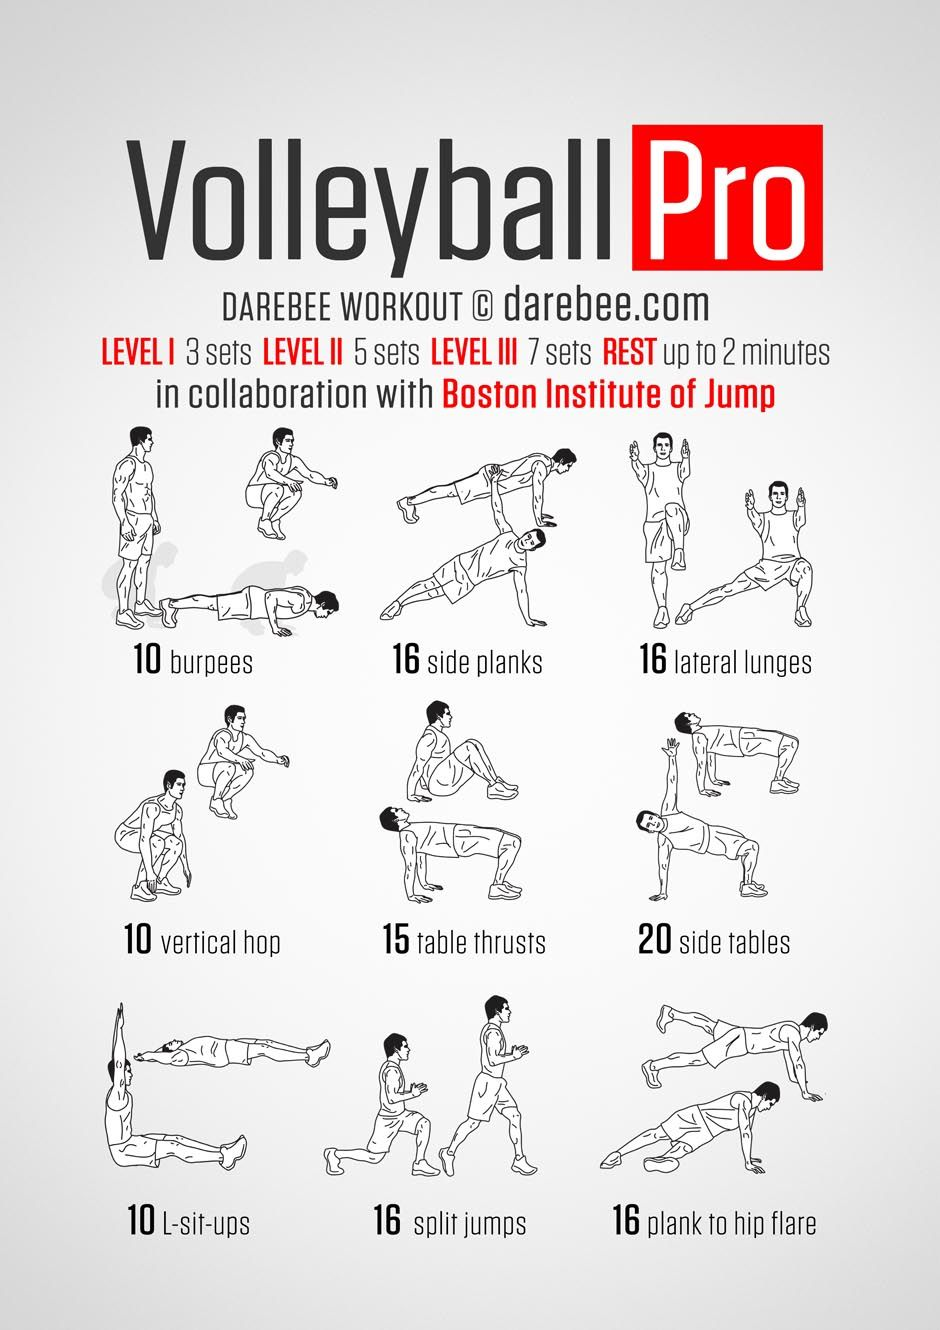 Volleyball Pro Workout Volleyball Workouts Coaching Volleyball Volleyball Training